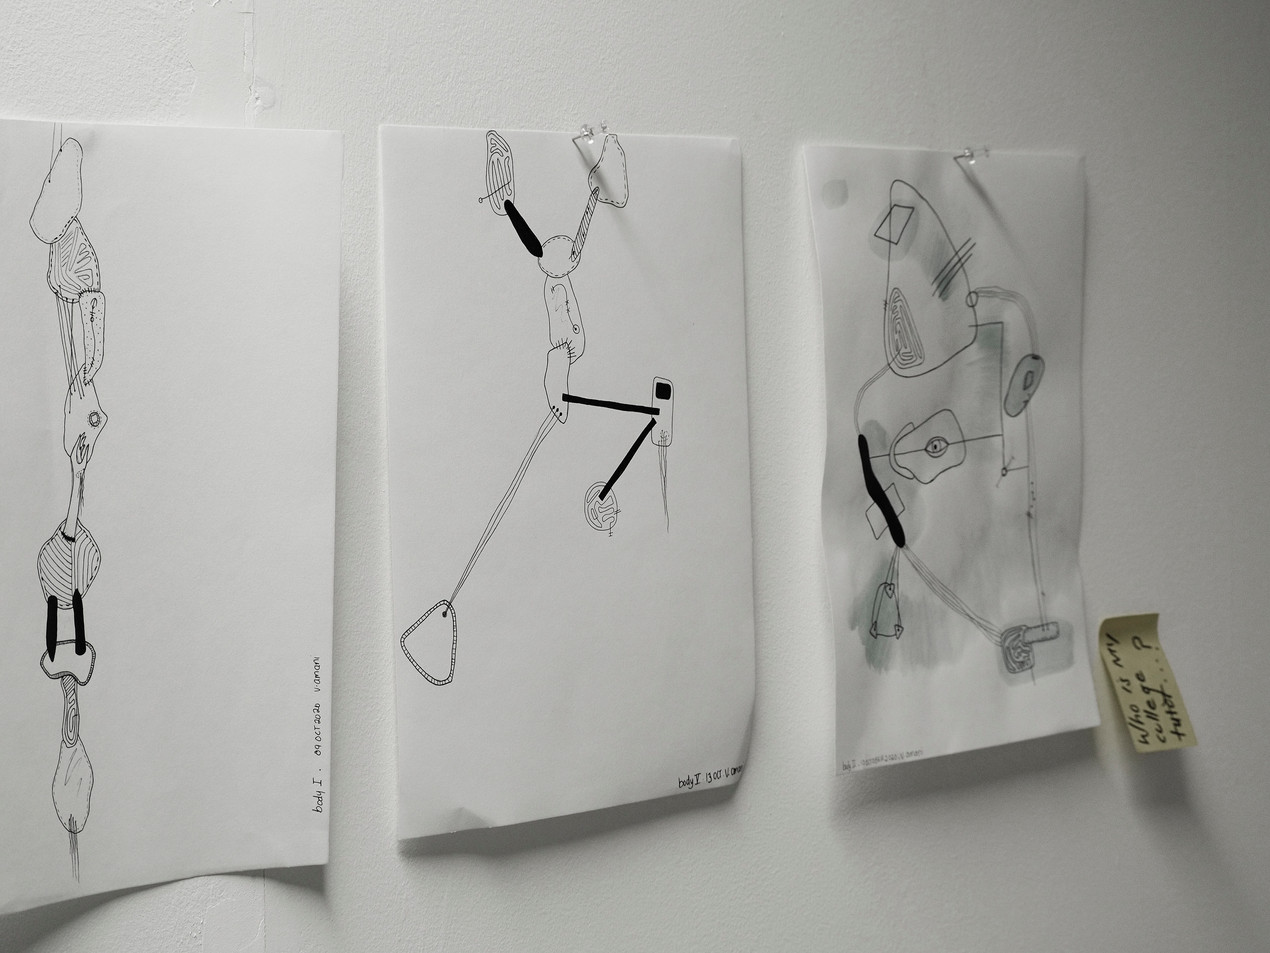 Body Drawings - Wall View